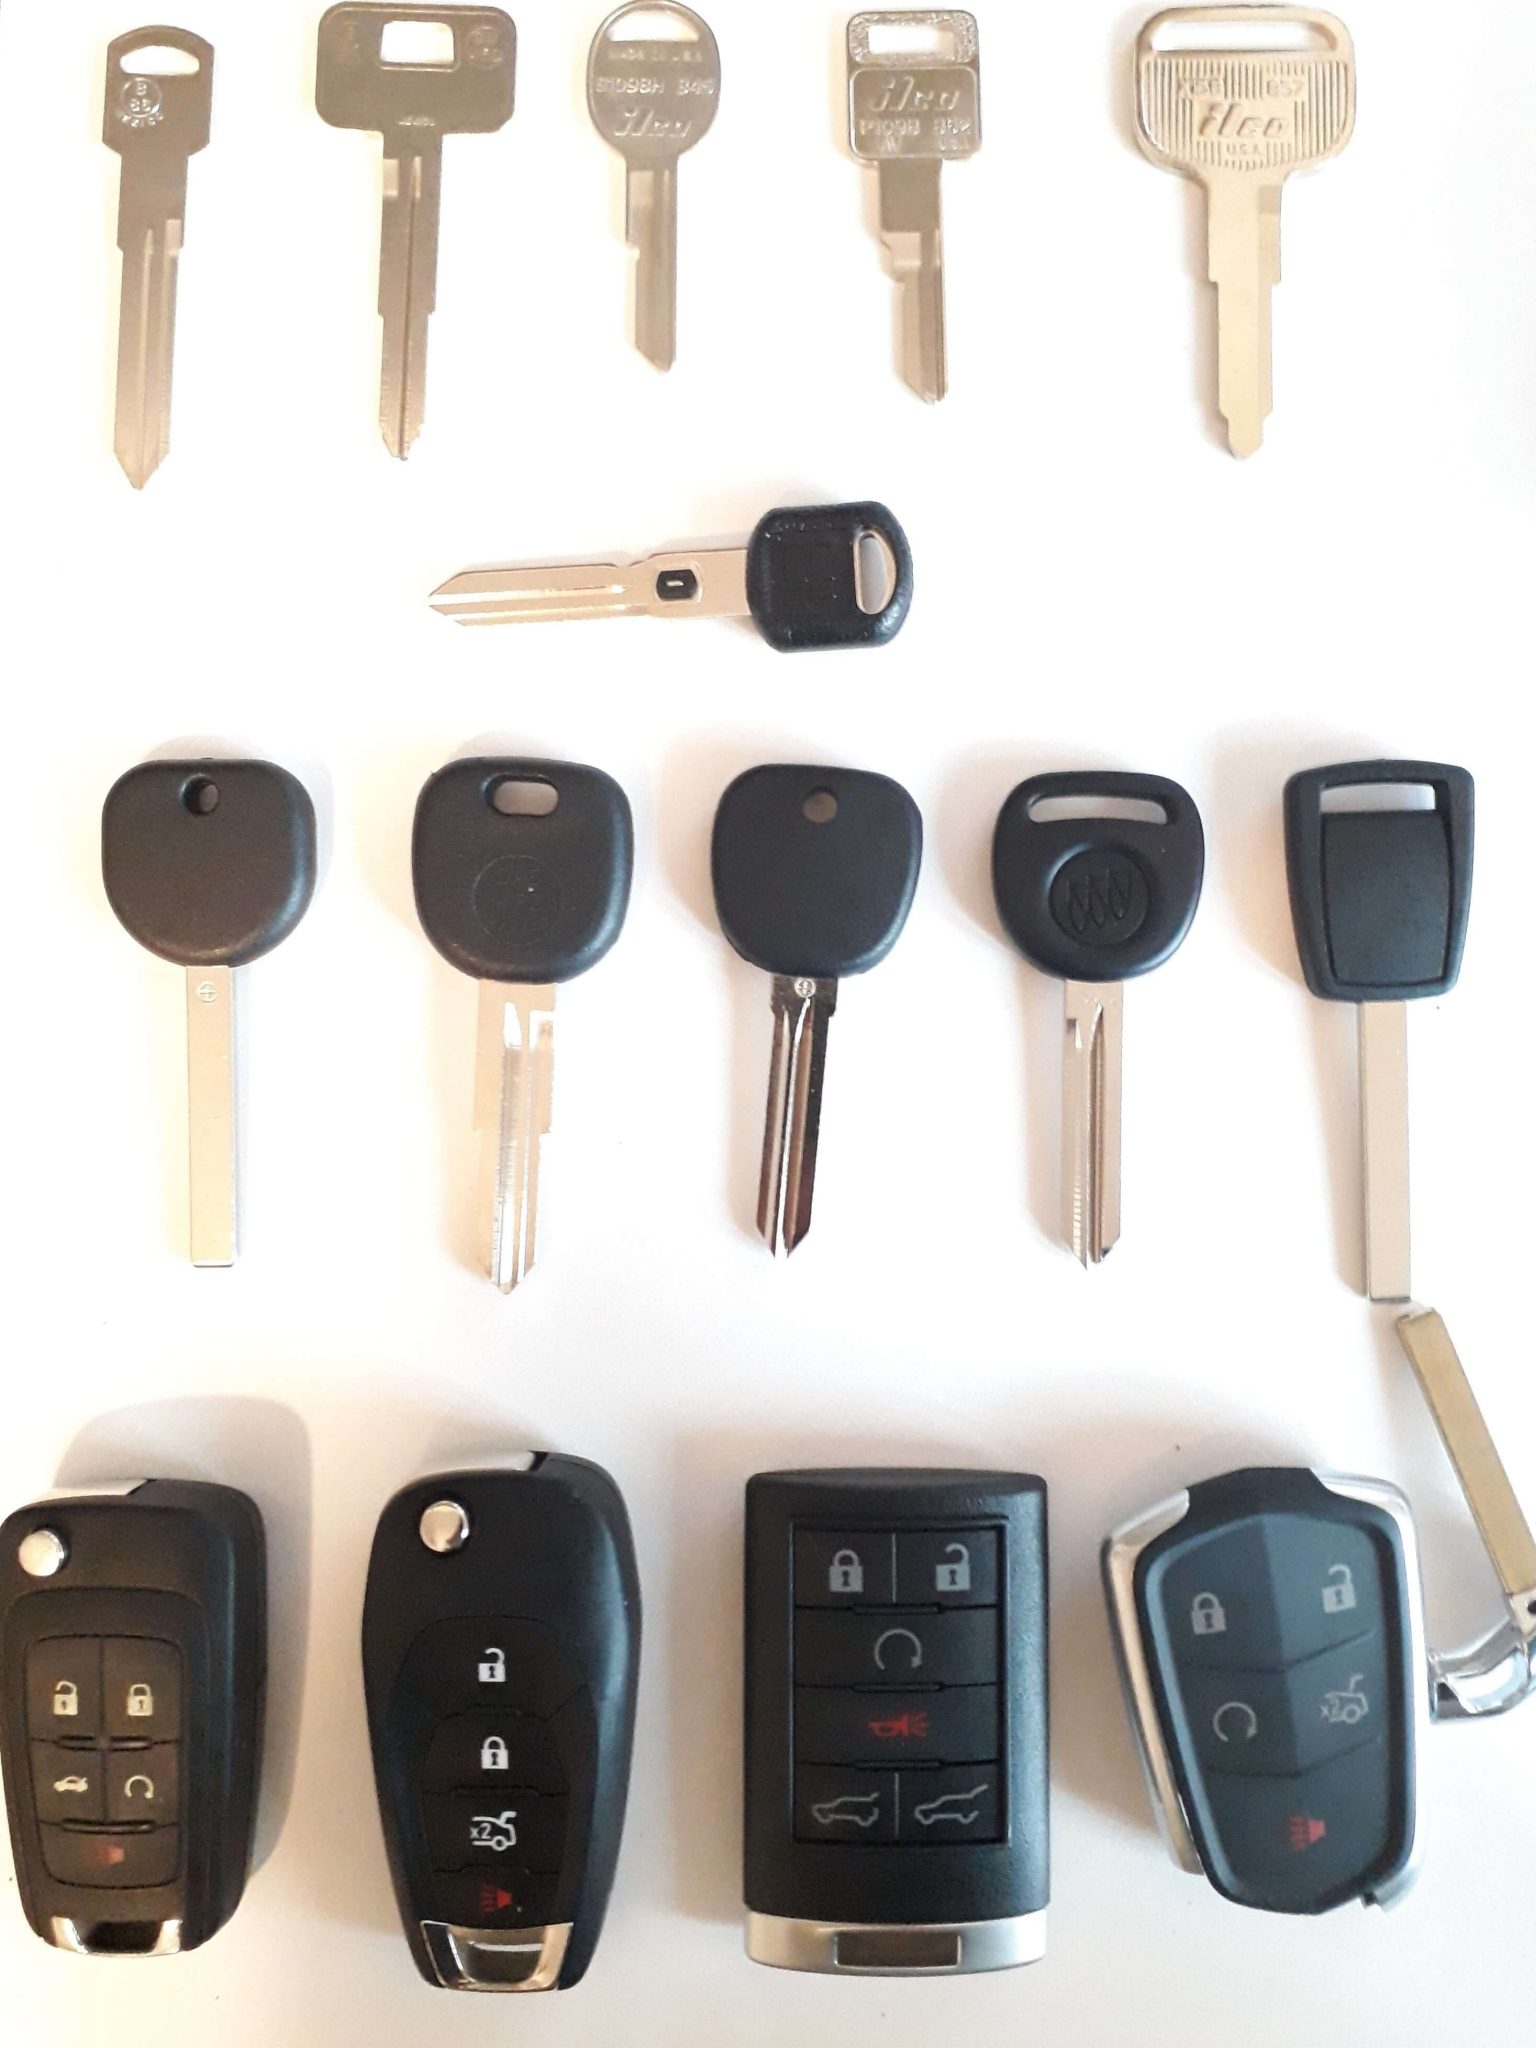 Cadillac SRX Replacement Keys - What To Do, Options, Cost & More